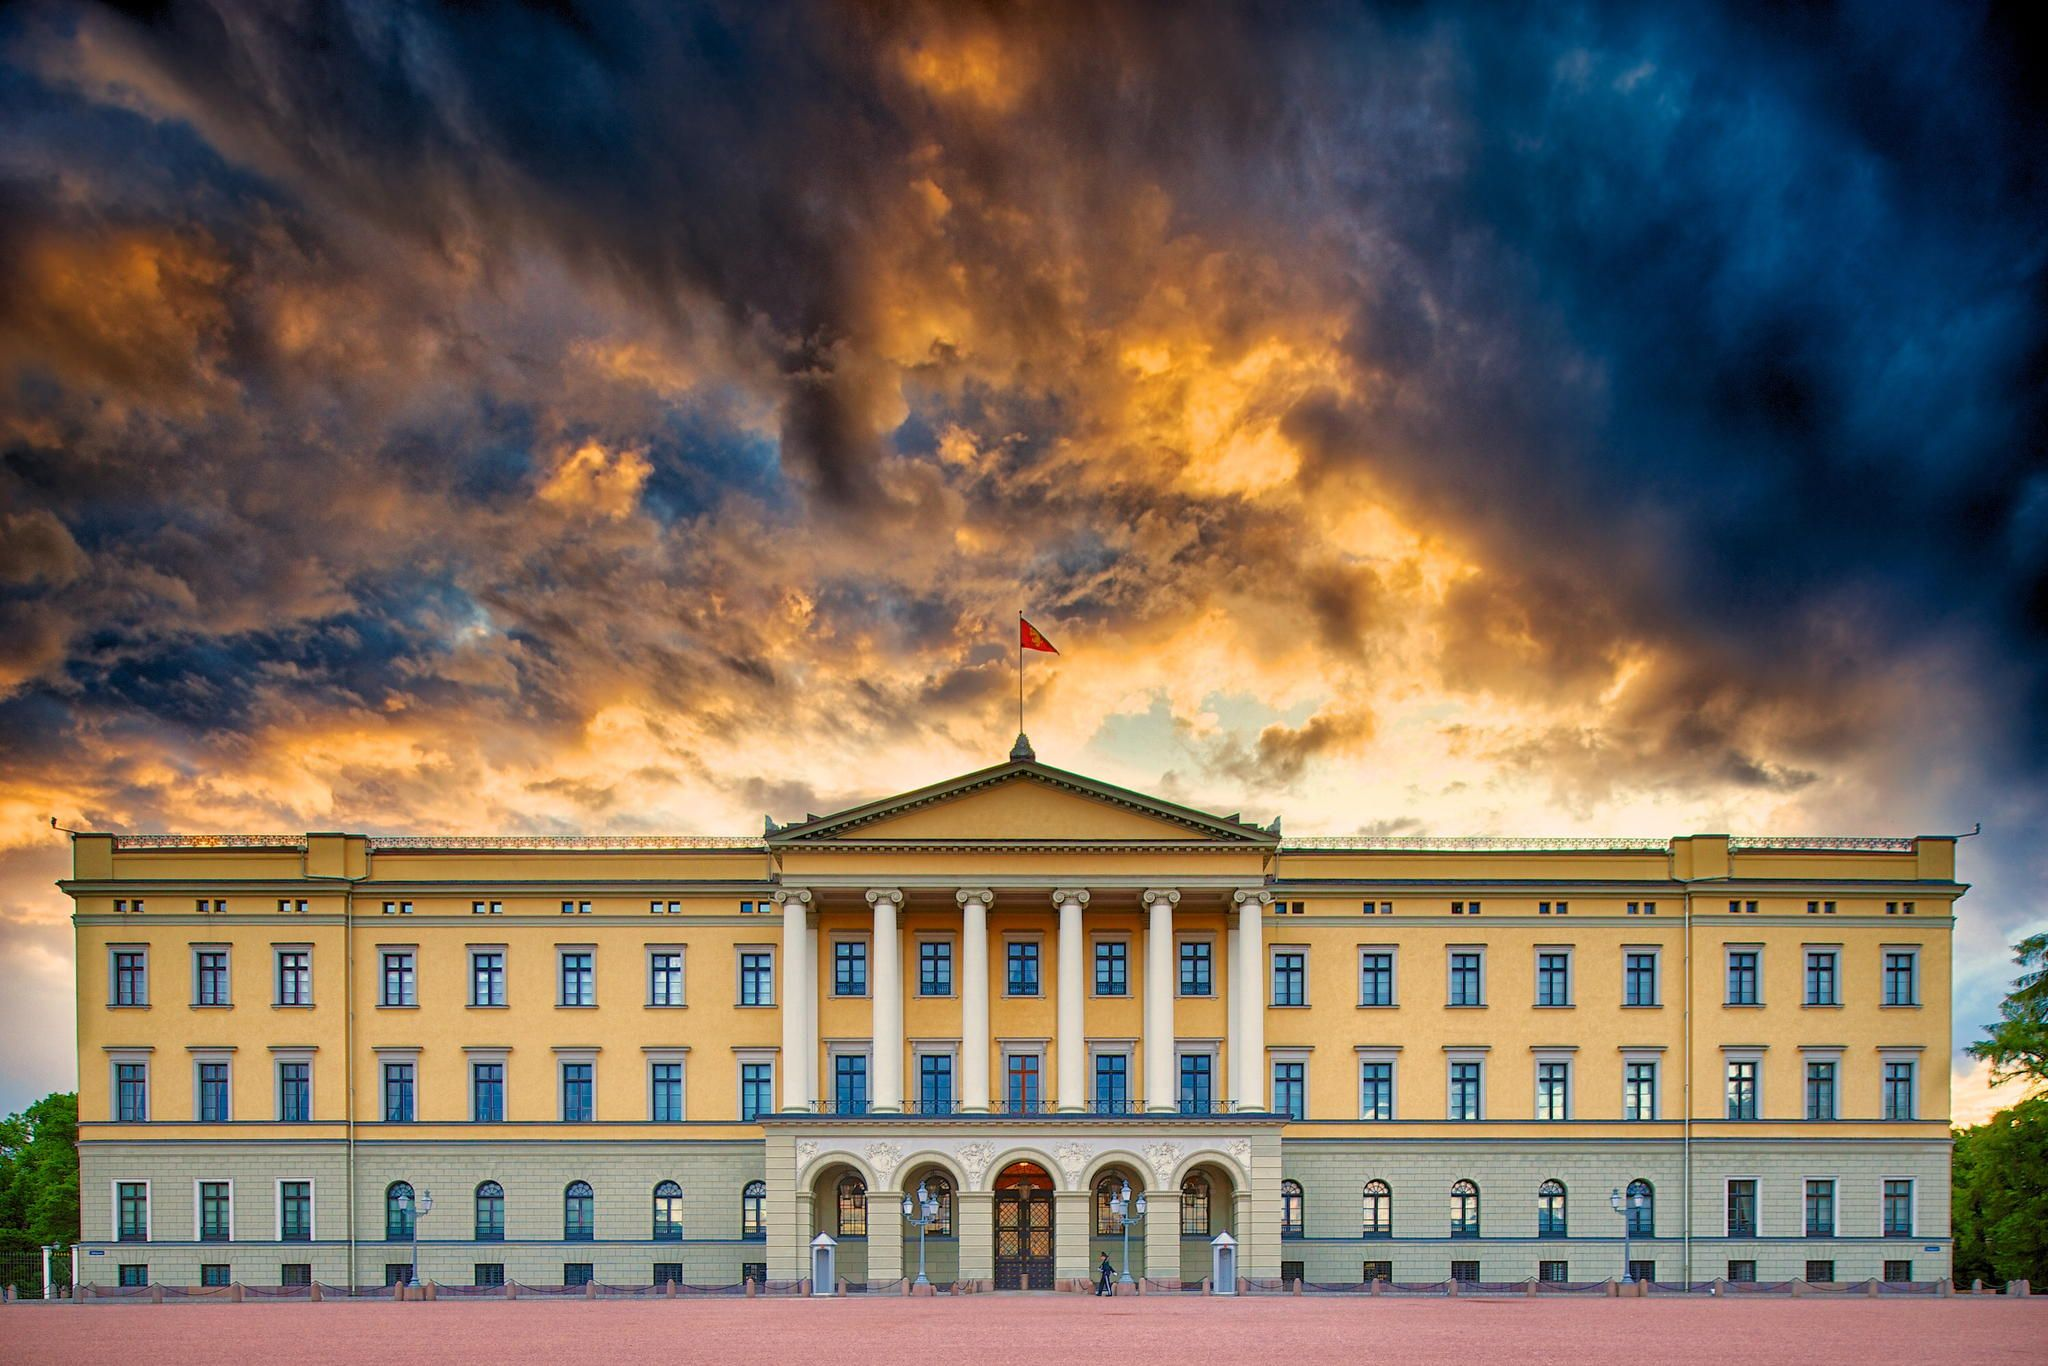 Norway's Royal Palace in Oslo by Josh Whitman on 500px